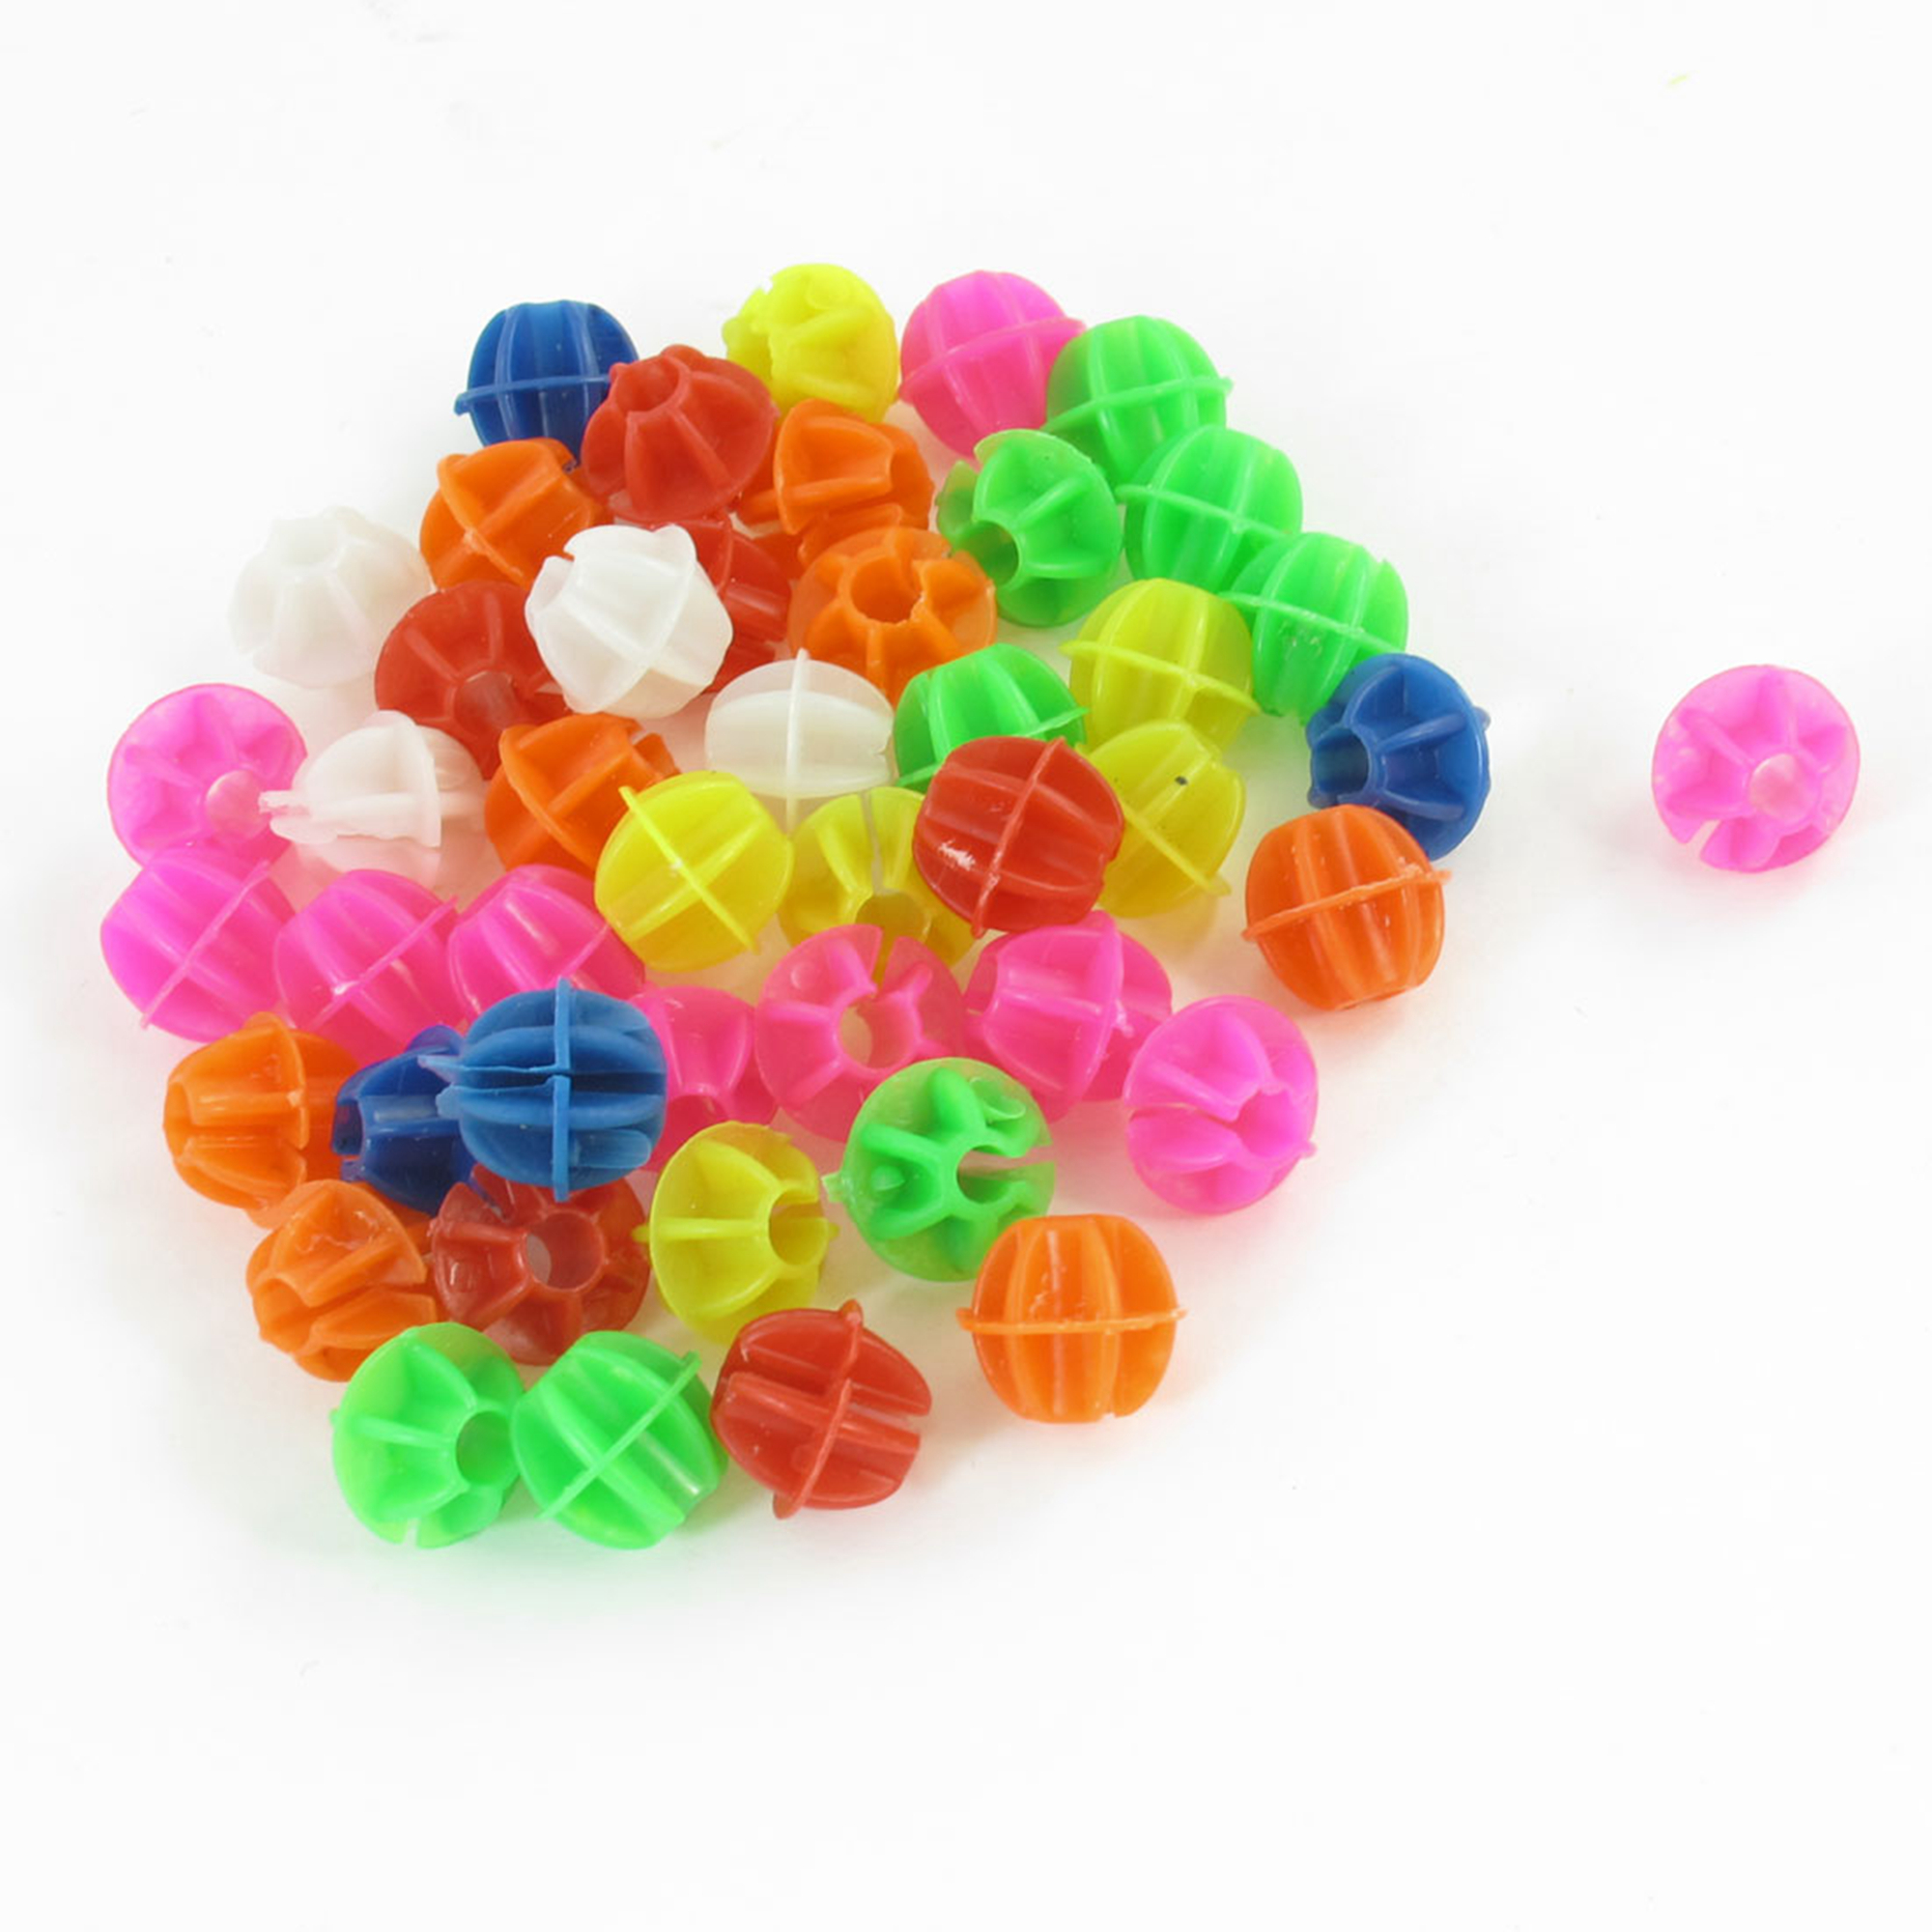 46 Pcs Colorful Plastic Clip Spoke Bead Bicycle Ornament for Bike